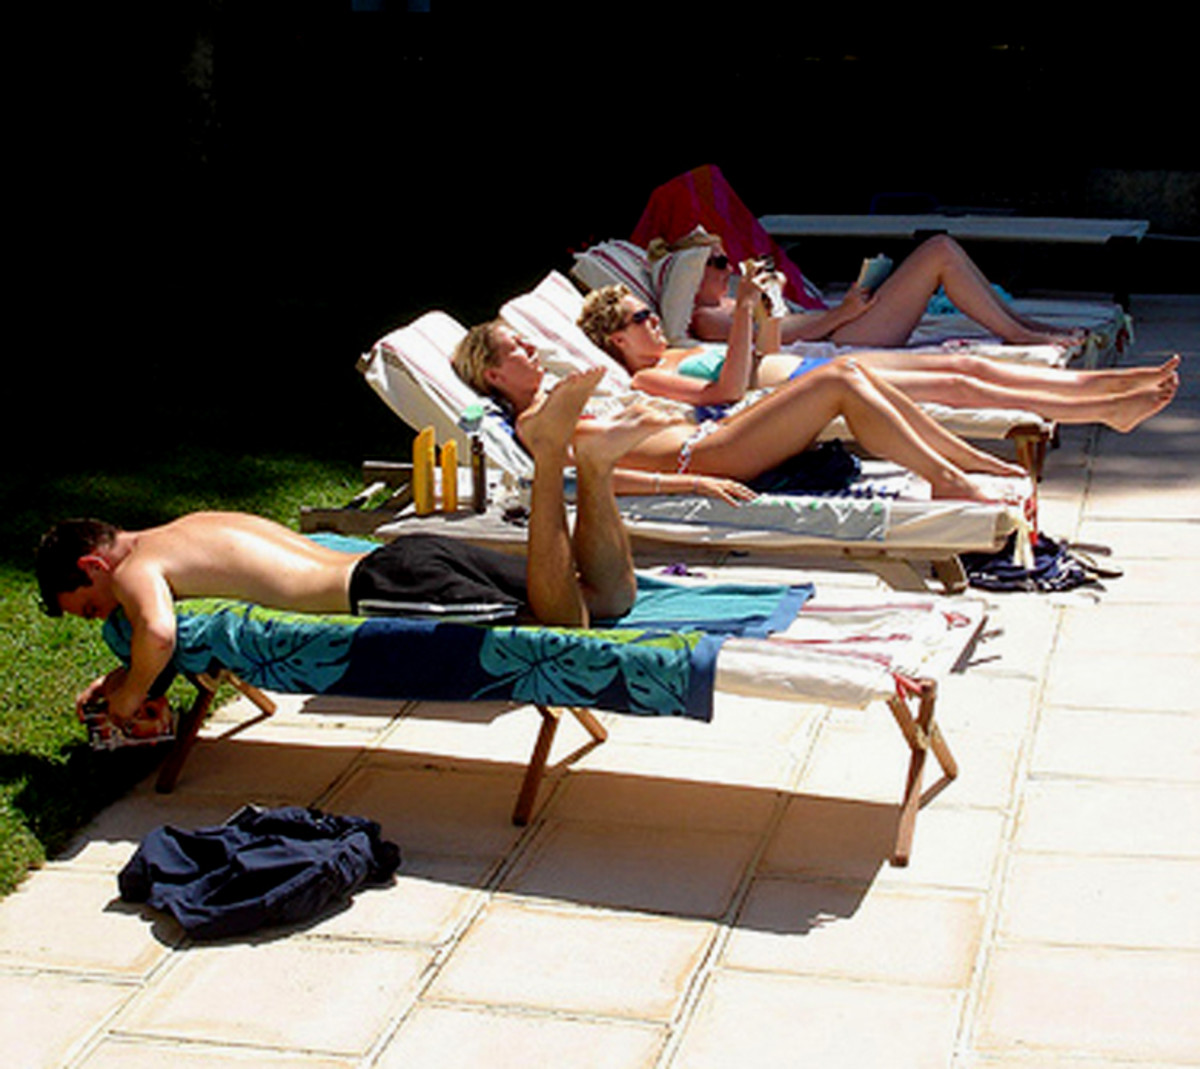 Sunbathing may be a fun social outing, but it exposes your skin to harmful UV rays.